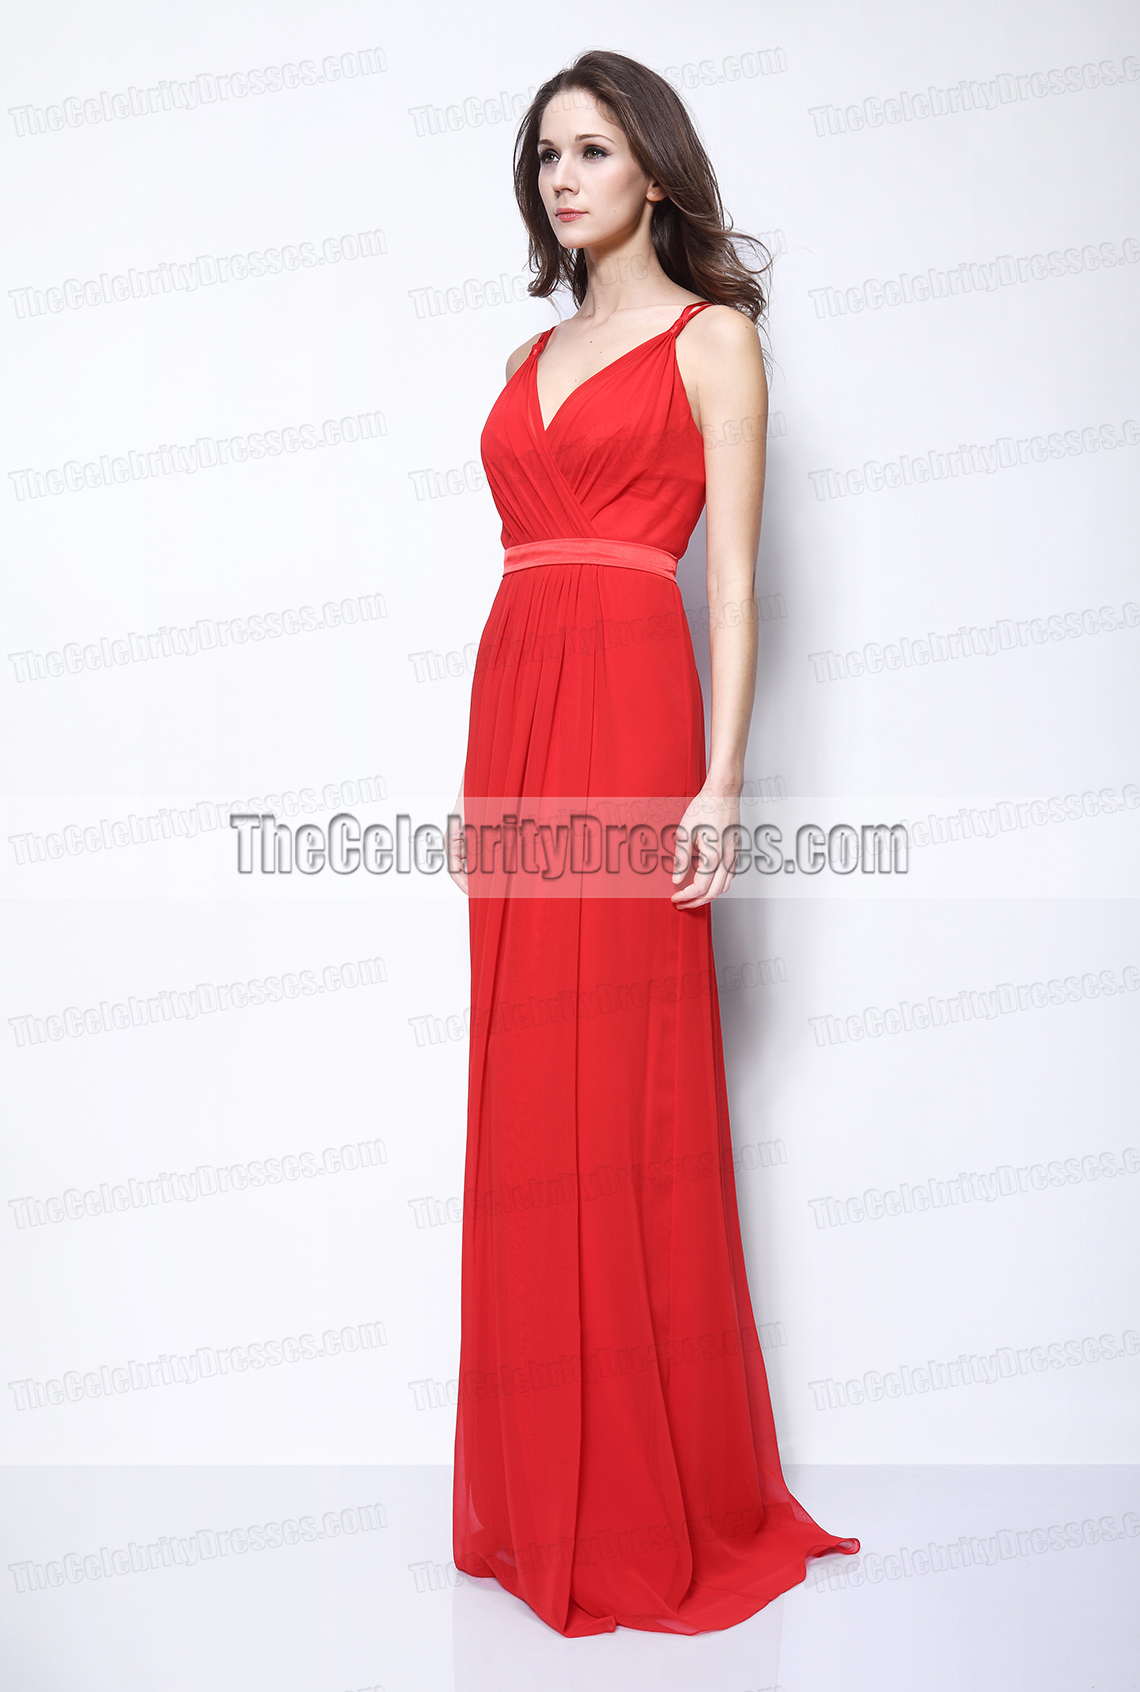 Selena Gomez Rote Prom Abendkleid 2011 Oscars Roter Teppich ...